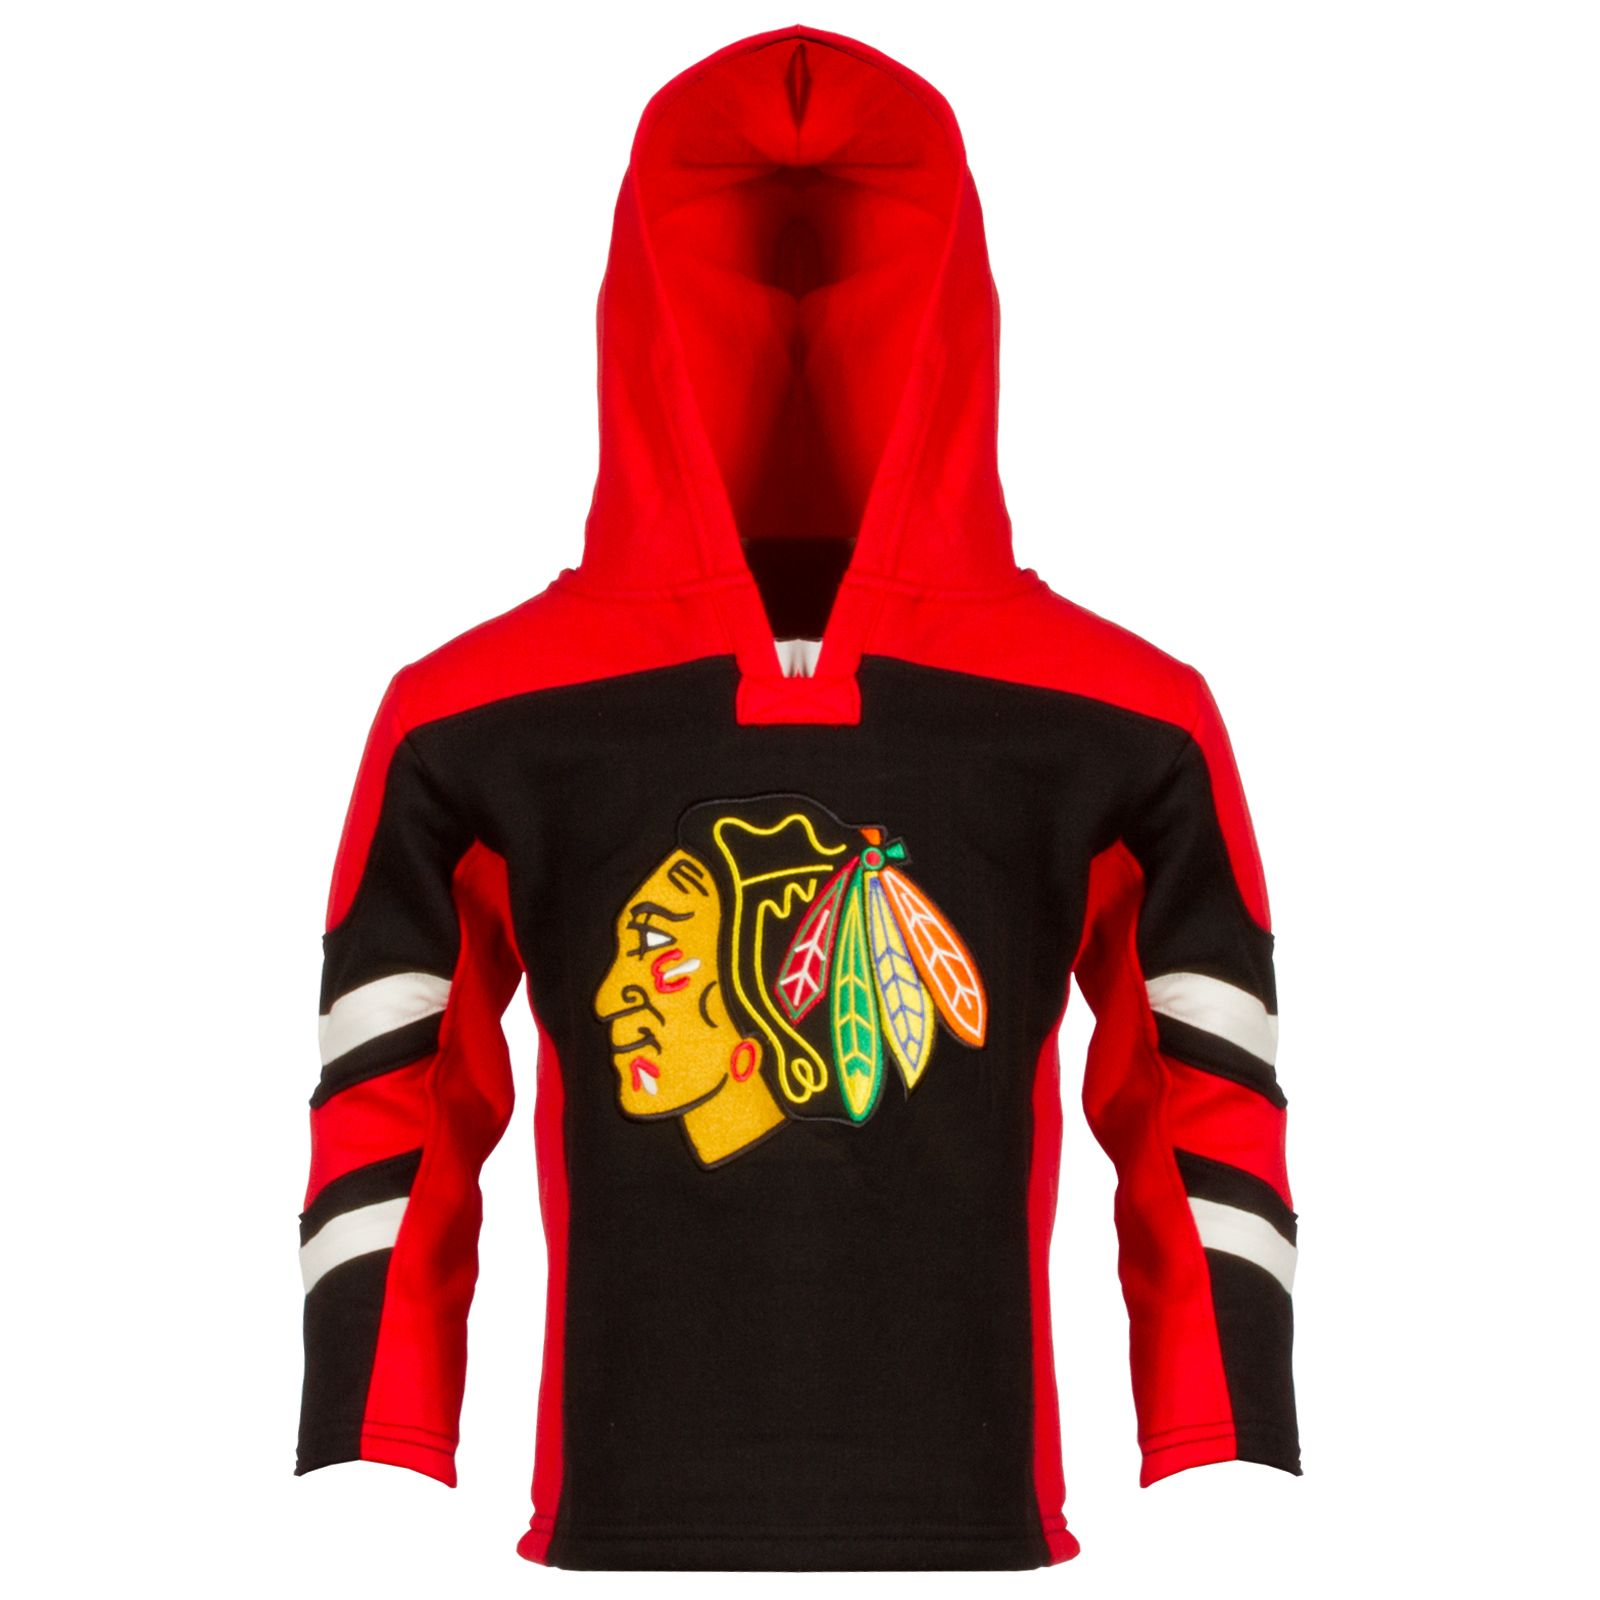 Chicago Blackhawks Toddler Red and Black Striped Primary Logo Hoodie by Old Time Hockey #Chicago #Blackhawks #ChicagoBlackhawks